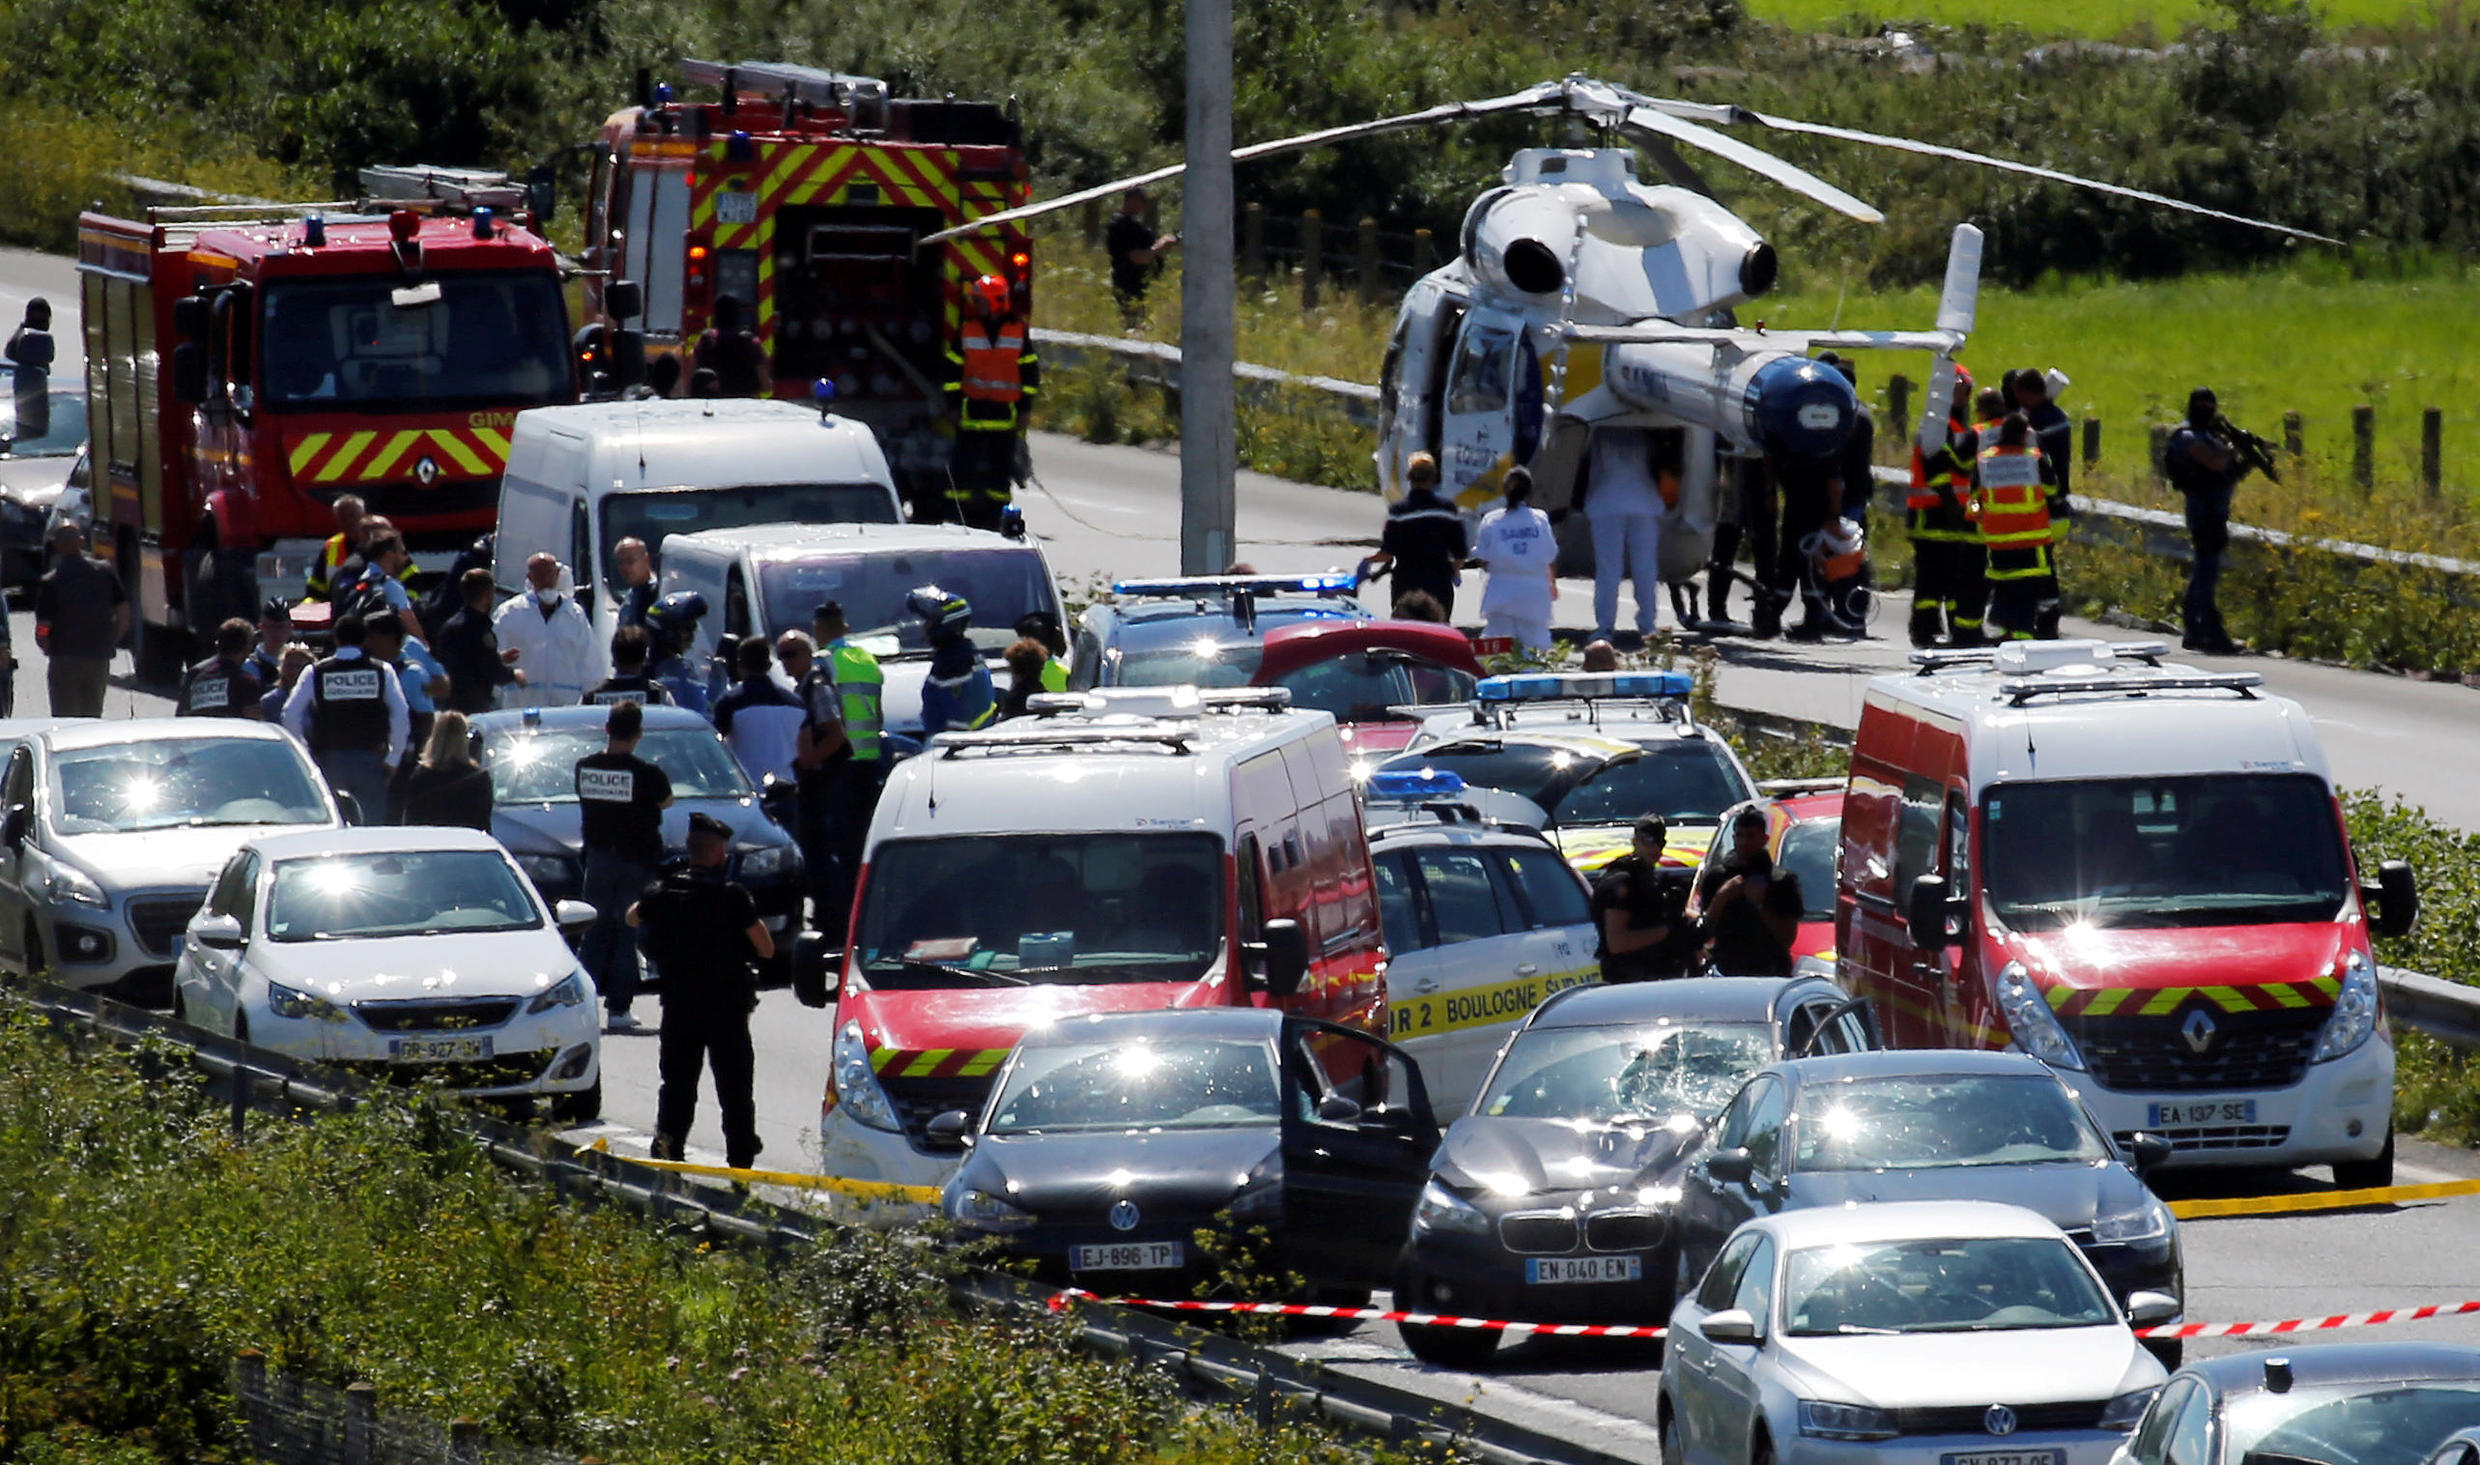 Police and rescue forces are seen on the scene where the man suspected of ramming a car into a group of soldiers on Wednesday in the Paris suburb of Levallois-Perret was shot and arrested on the A16 motorway, near Marquise, France, August 9, 2017.